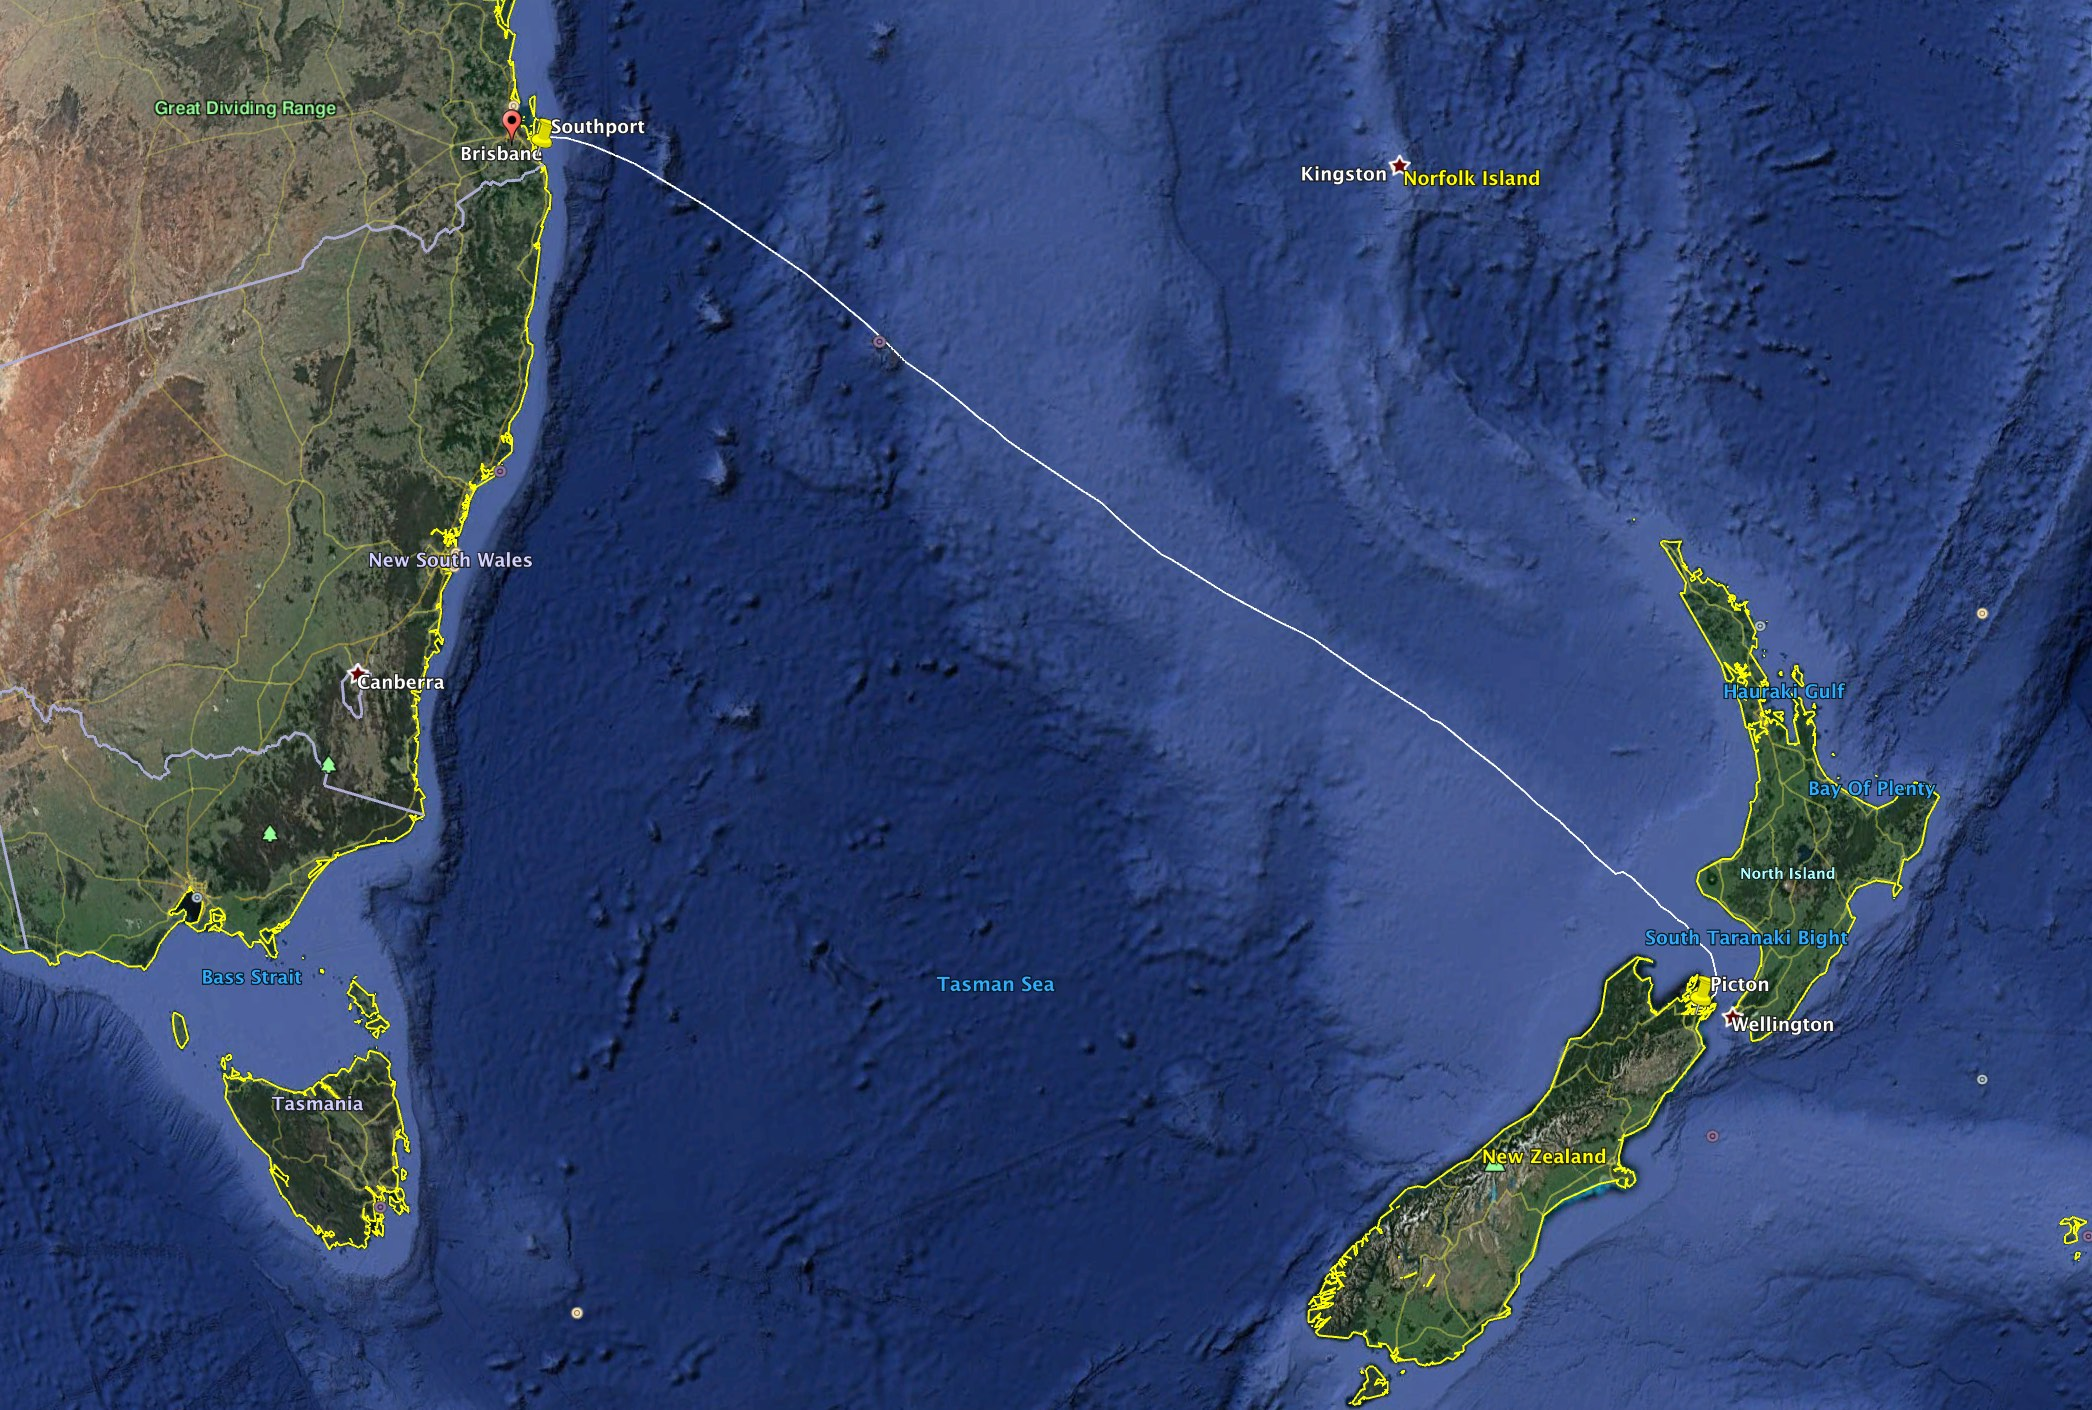 The 1,320nm route from Picton to Southport across the infamous Tasman Sea.